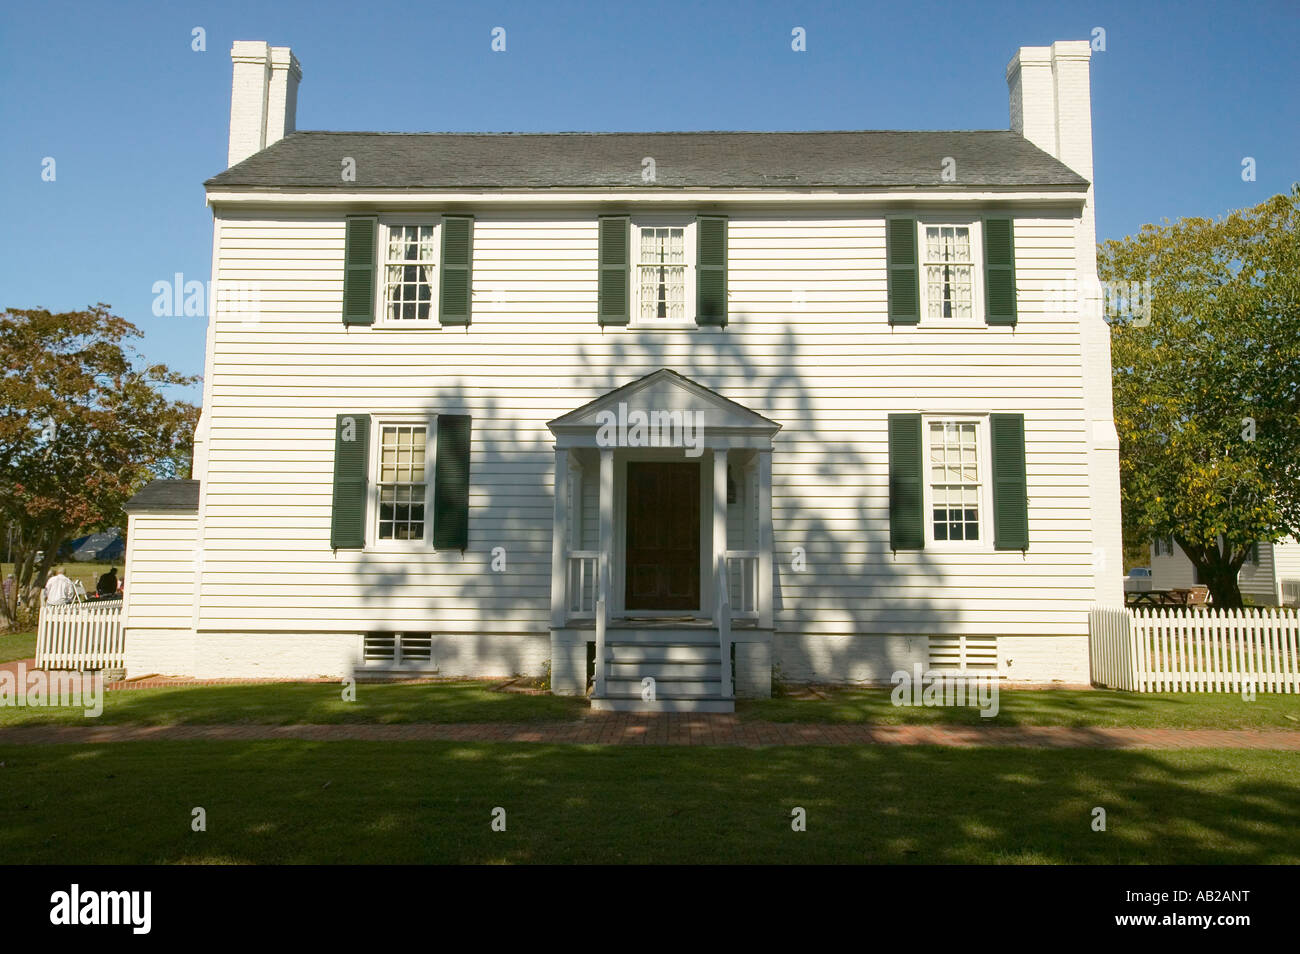 Endview Plantation circa 1769 near Yorktown Virginia as part of the 225th anniversary of the Victory of Yorktown - Stock Image